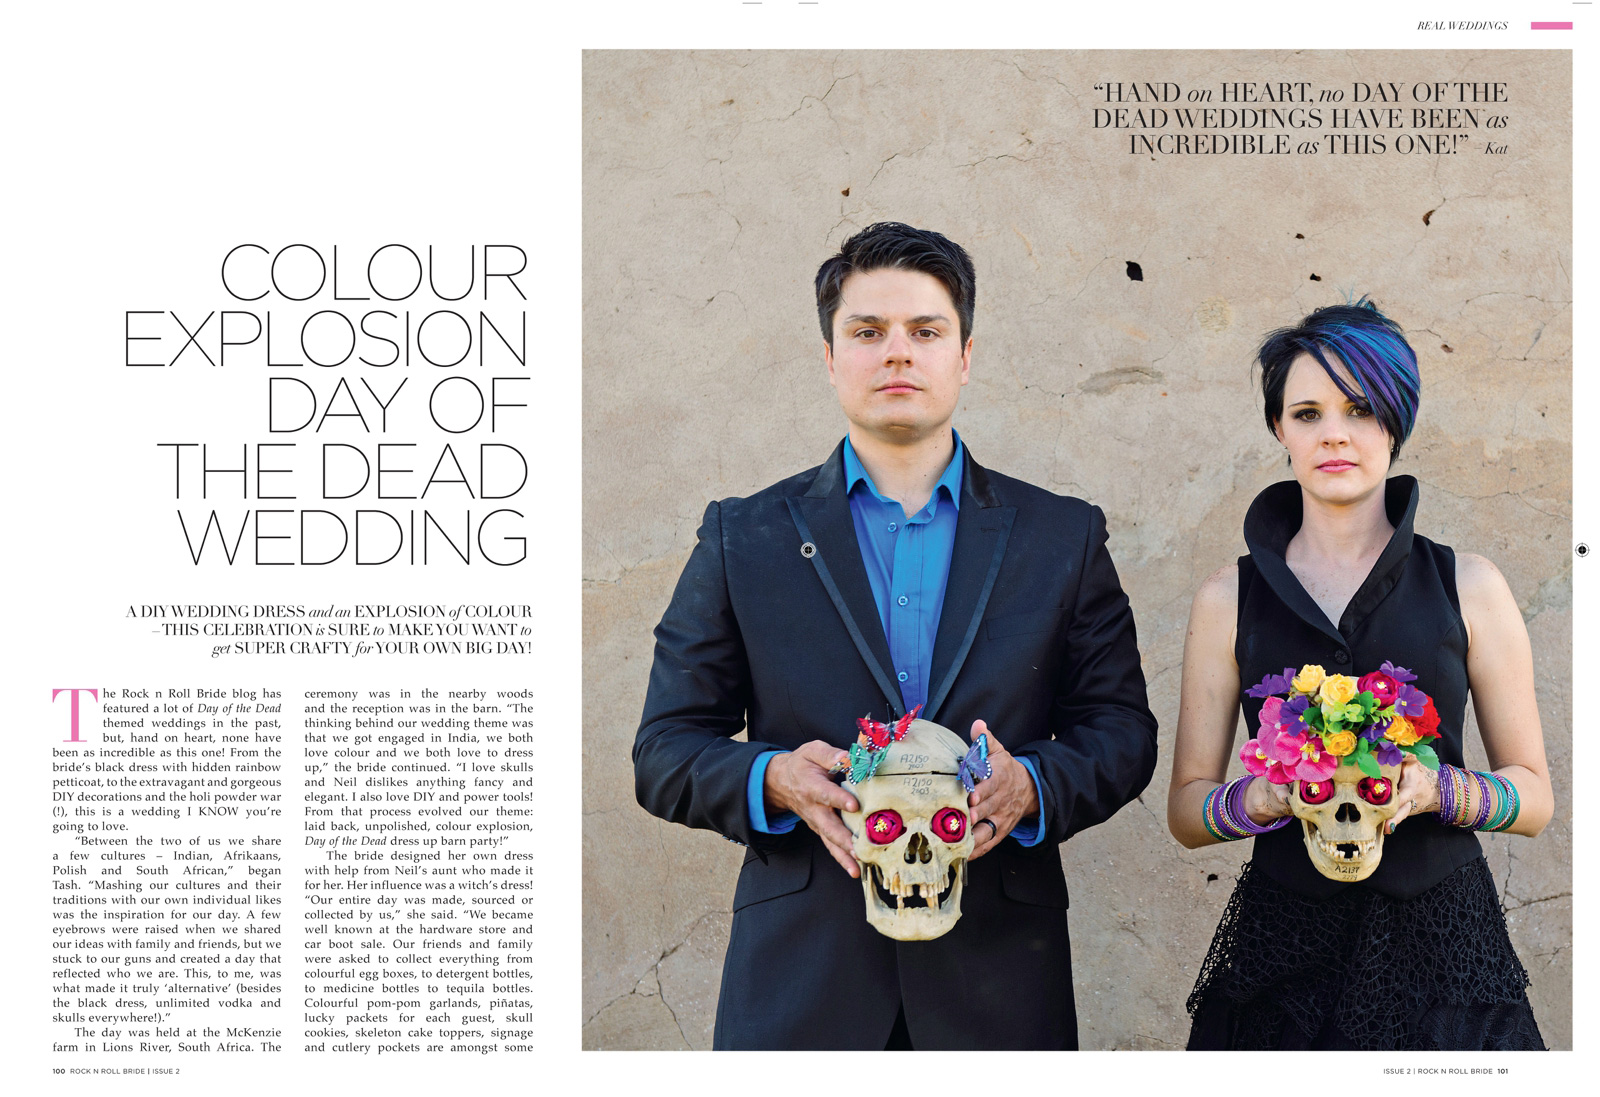 Skull candy wedding